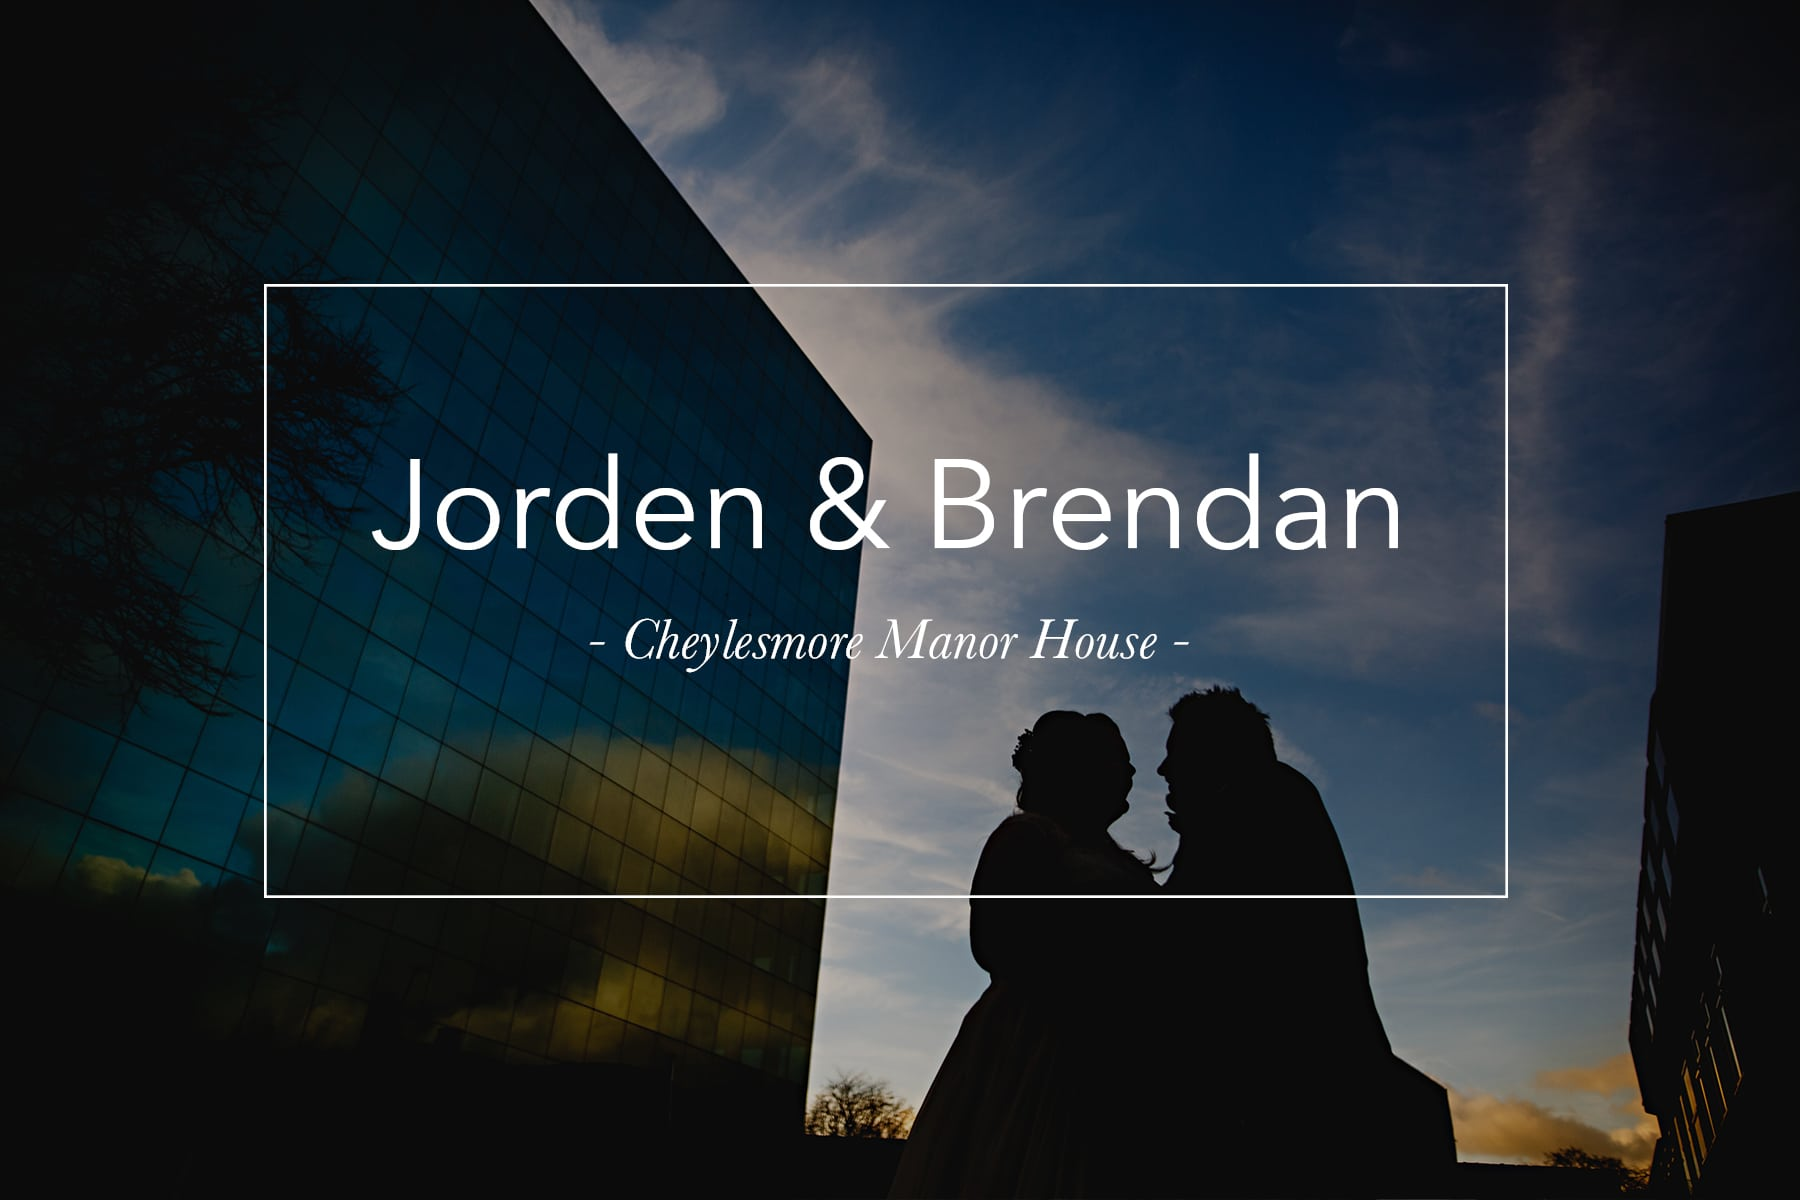 the bride and groom stood by a blue glass building